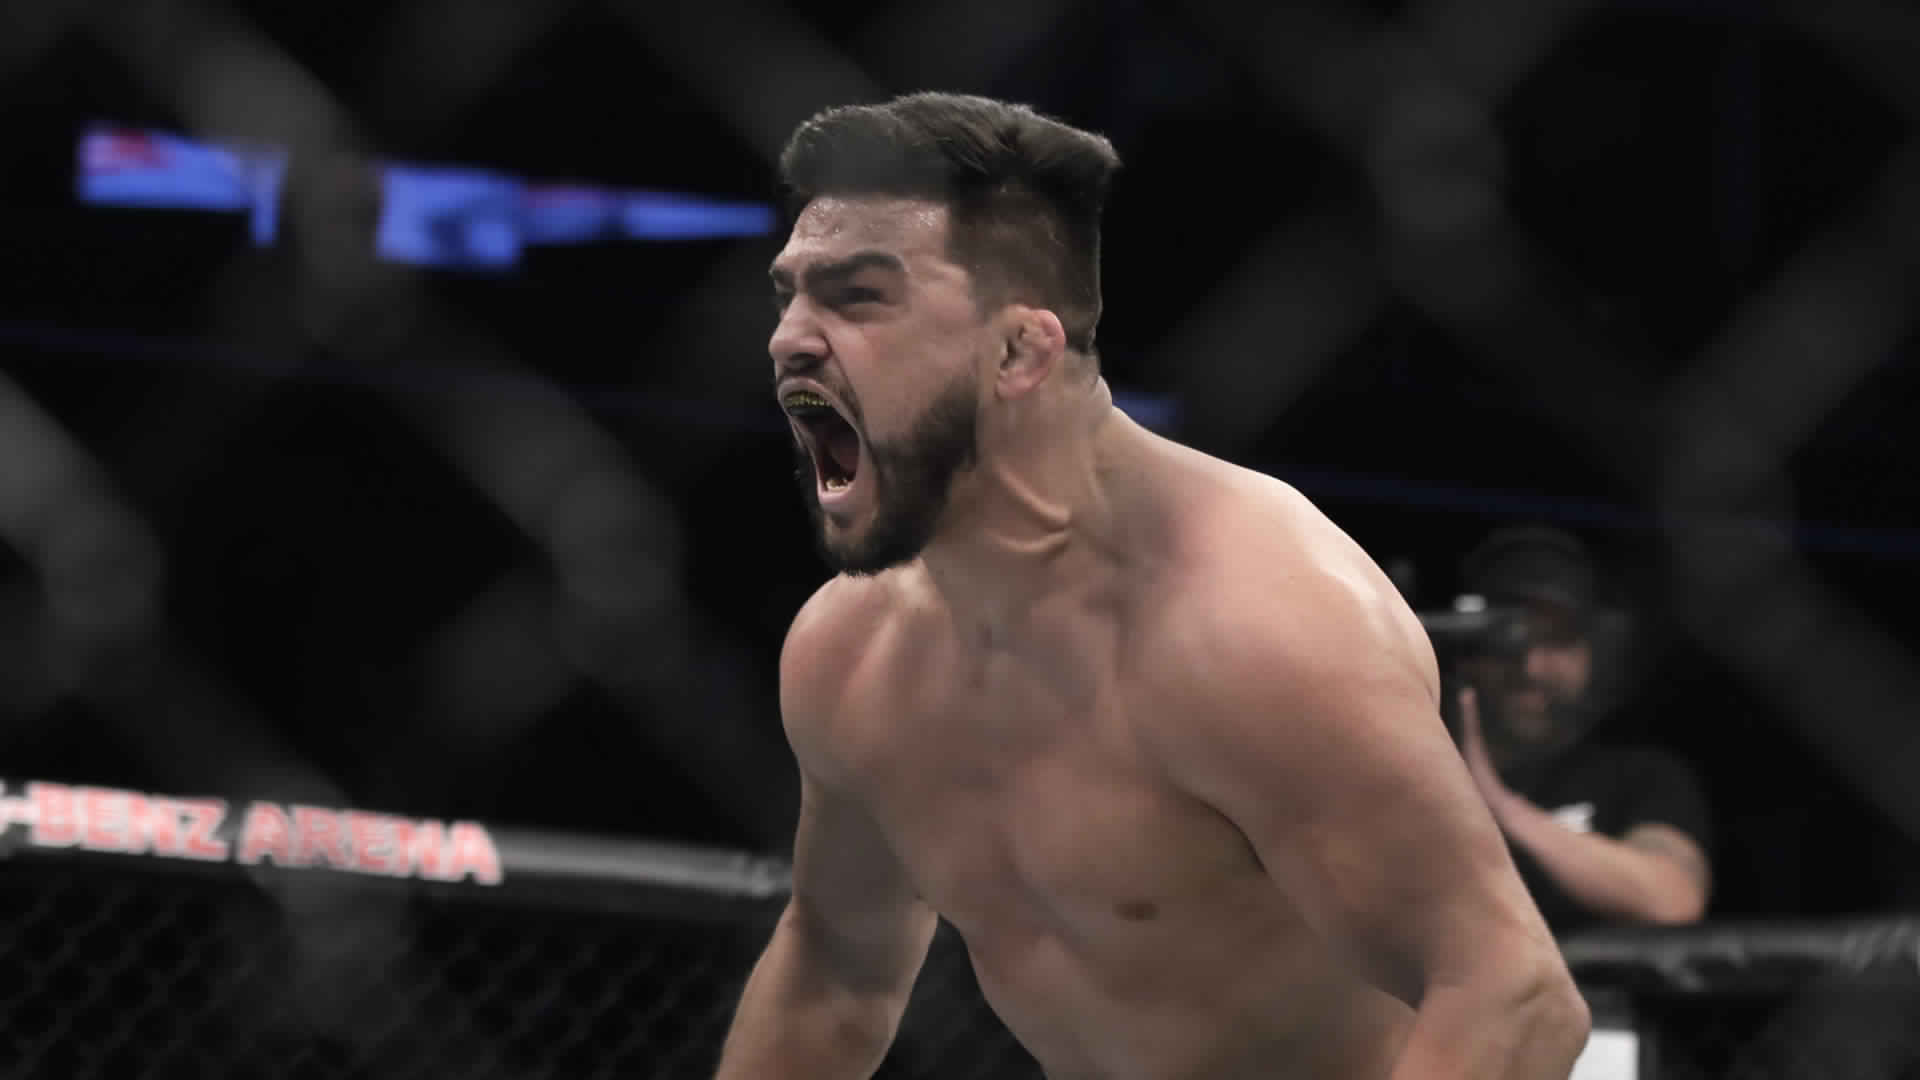 UFC: Kelvin Gastelum on Israel Adesanya: He's not fought the quality of opponents that I have - Gastelum